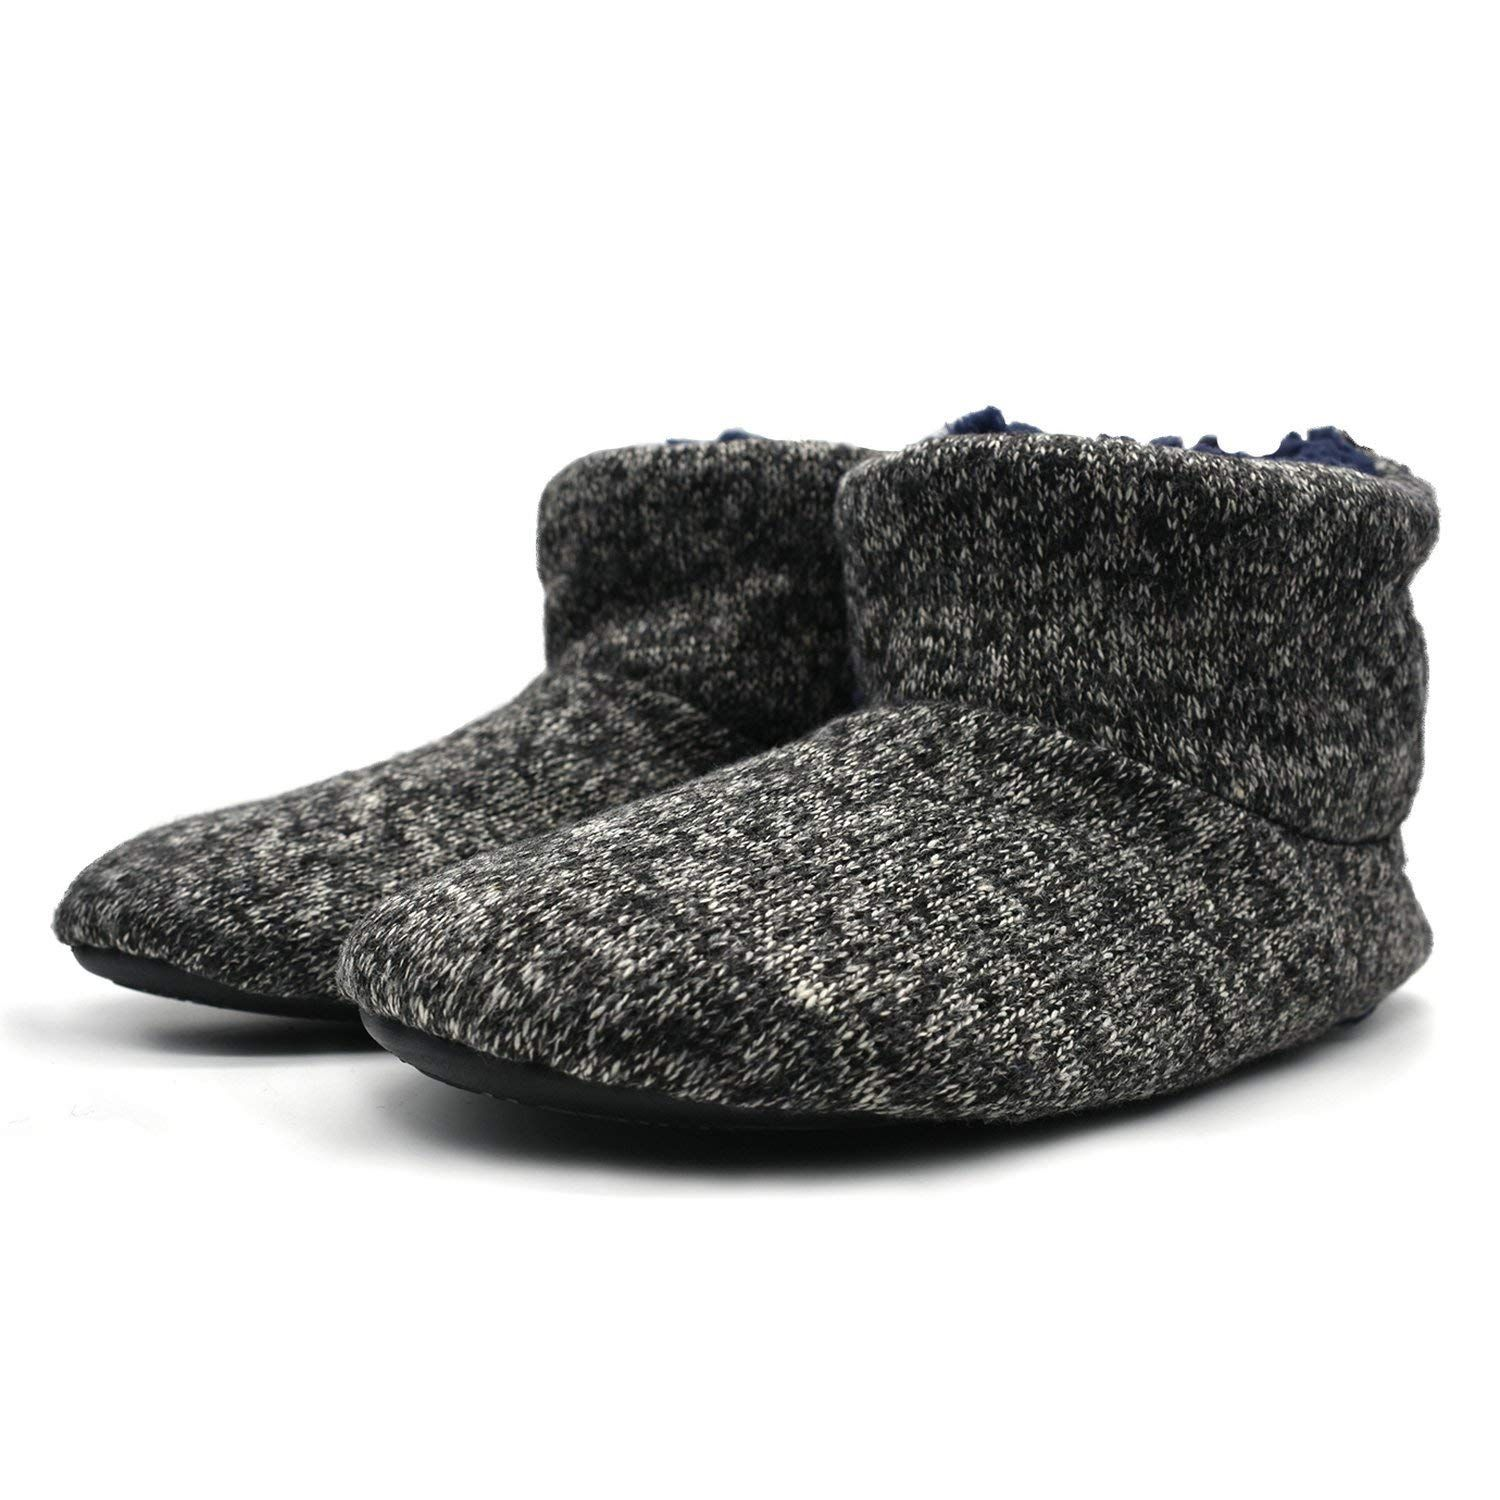 8fbf94c8124b ONCAI Knit Wool Warm Men Indoor Pull On Cosy Memory Foam Slipper  Boots Booties TPR